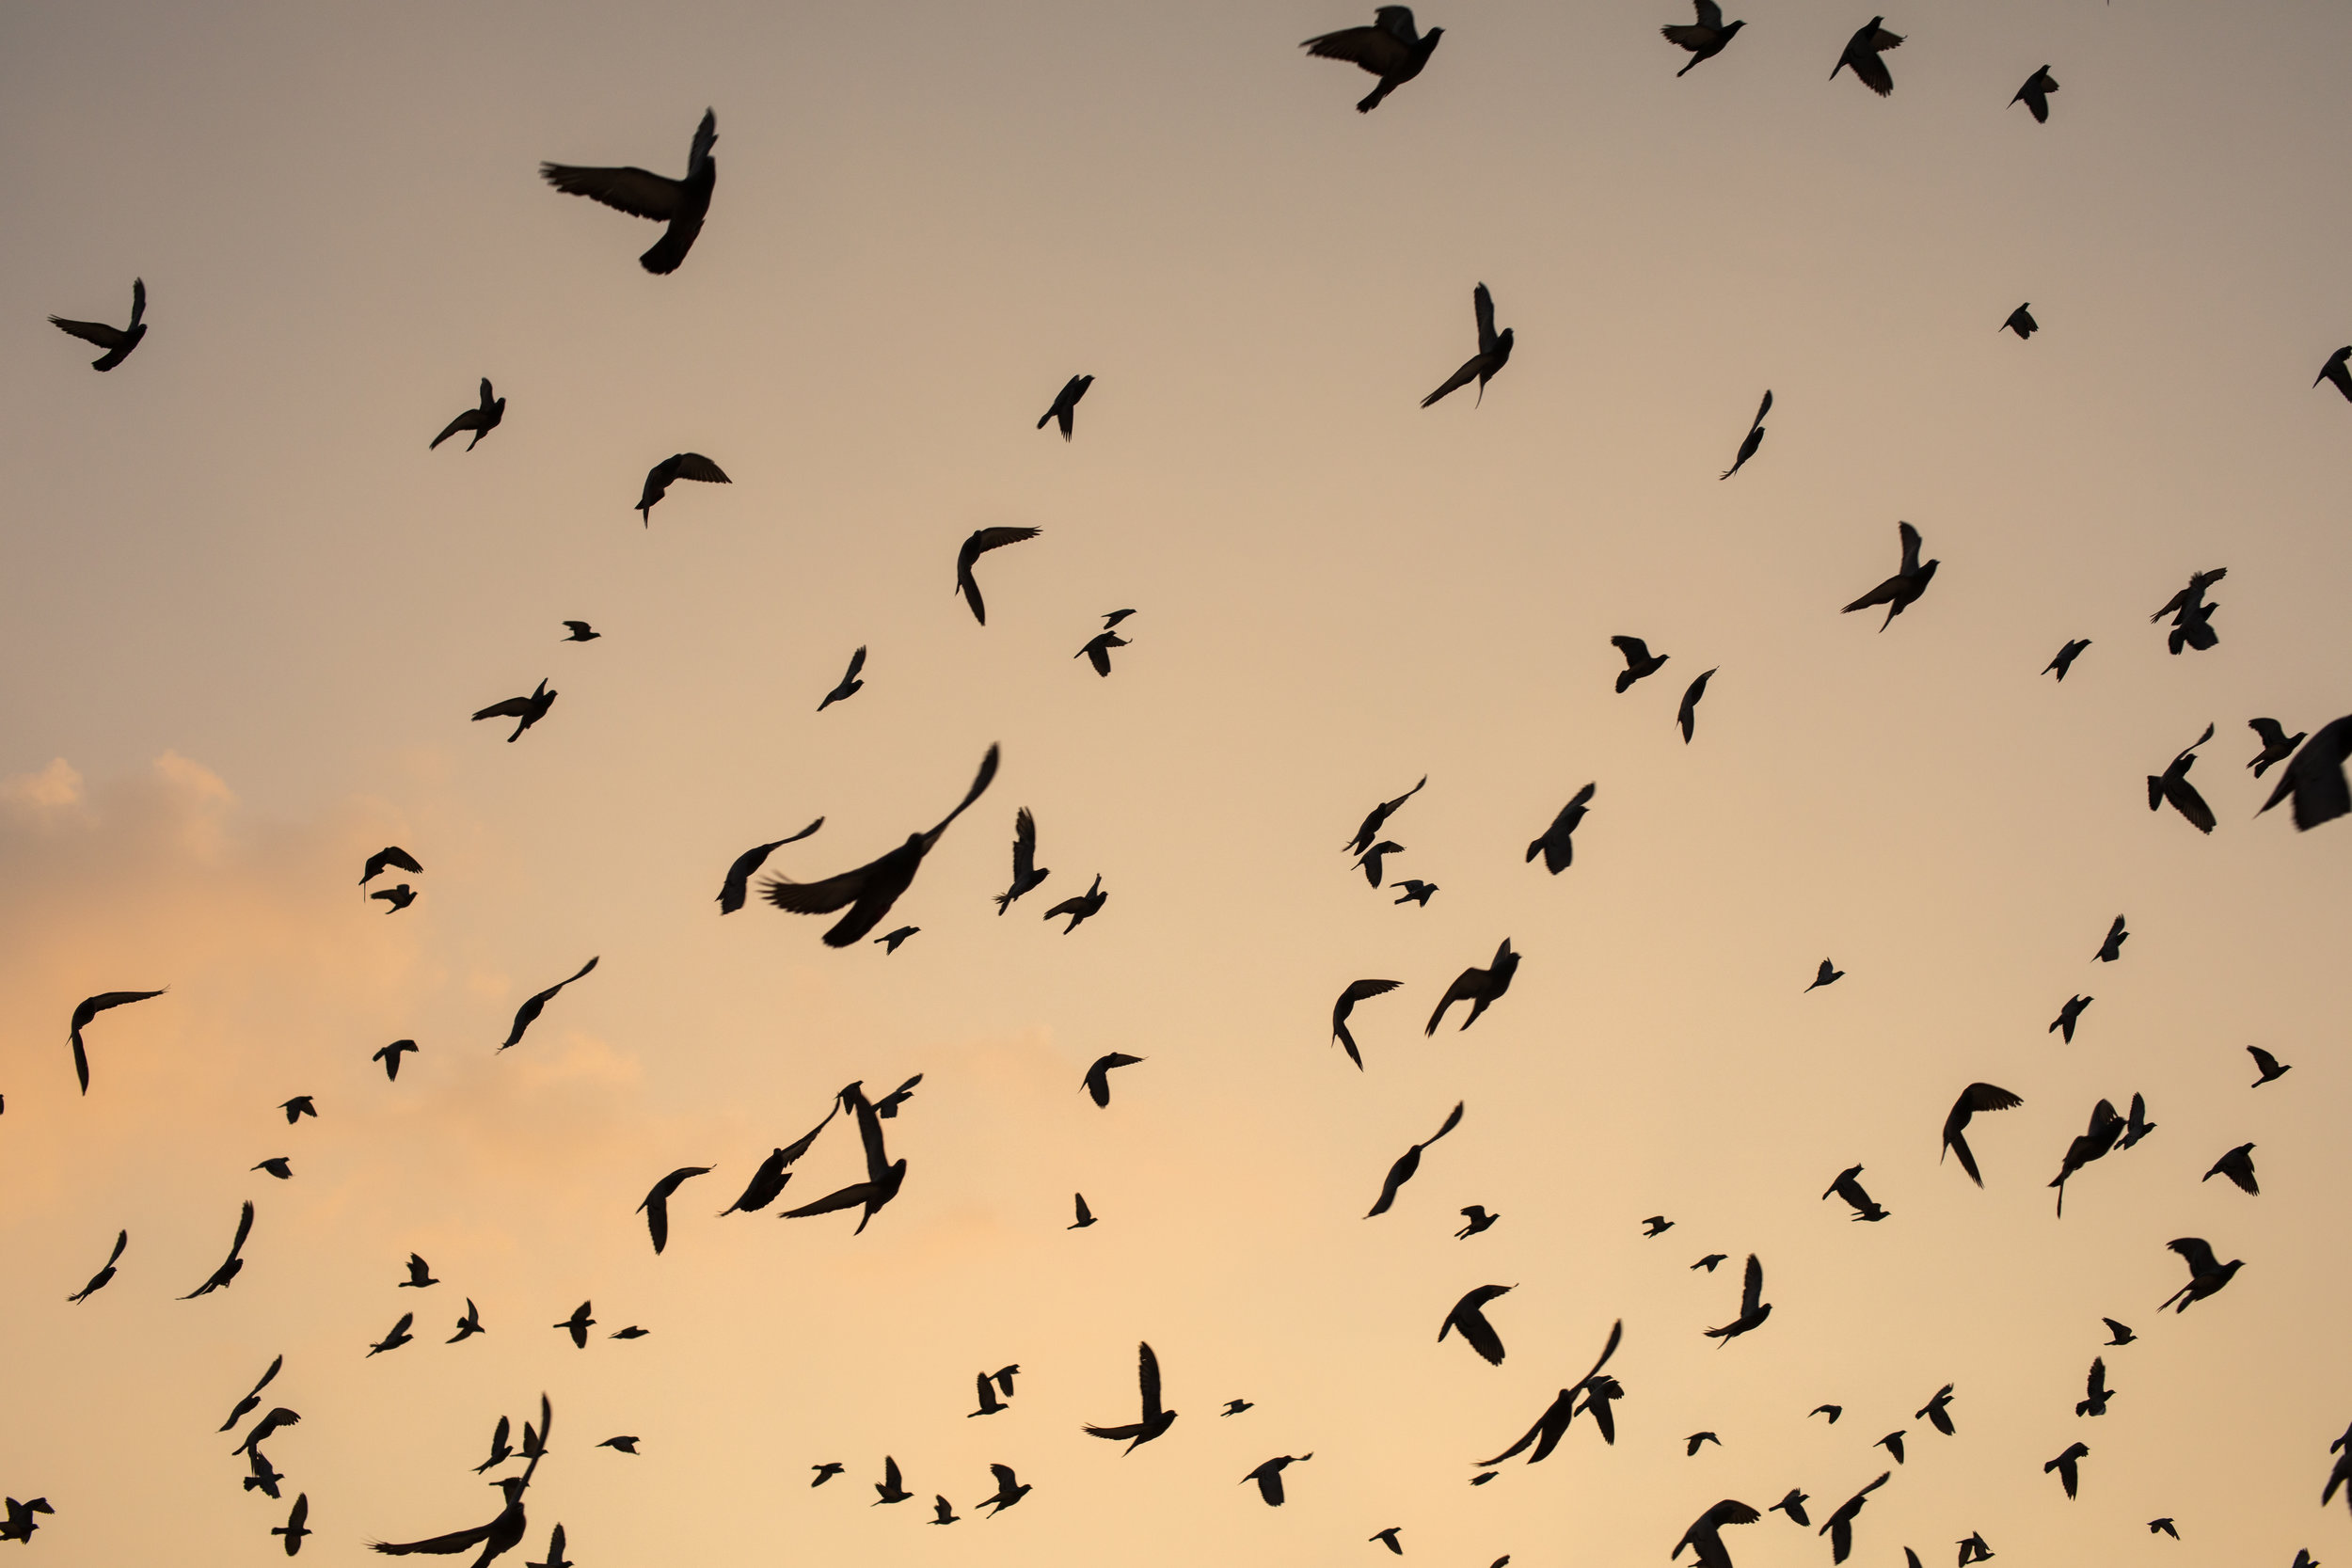 Golden skies filled with birds in India at sunrise.